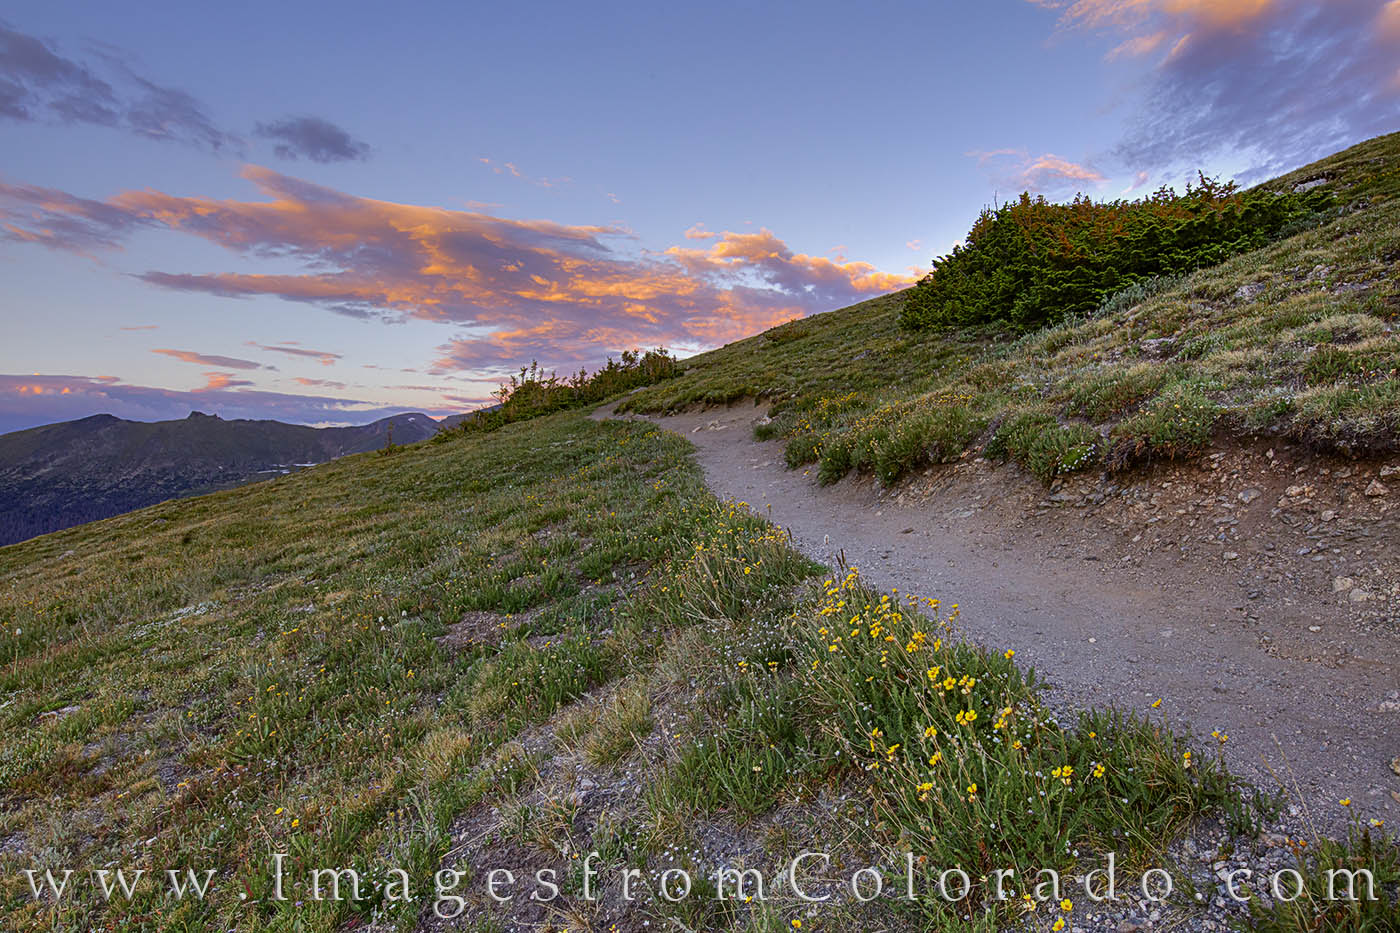 RMNP, sunset, rocky mountains, trail ridge road, summer, national parks, RMNP prints, colorado prints, wildflowers, photo